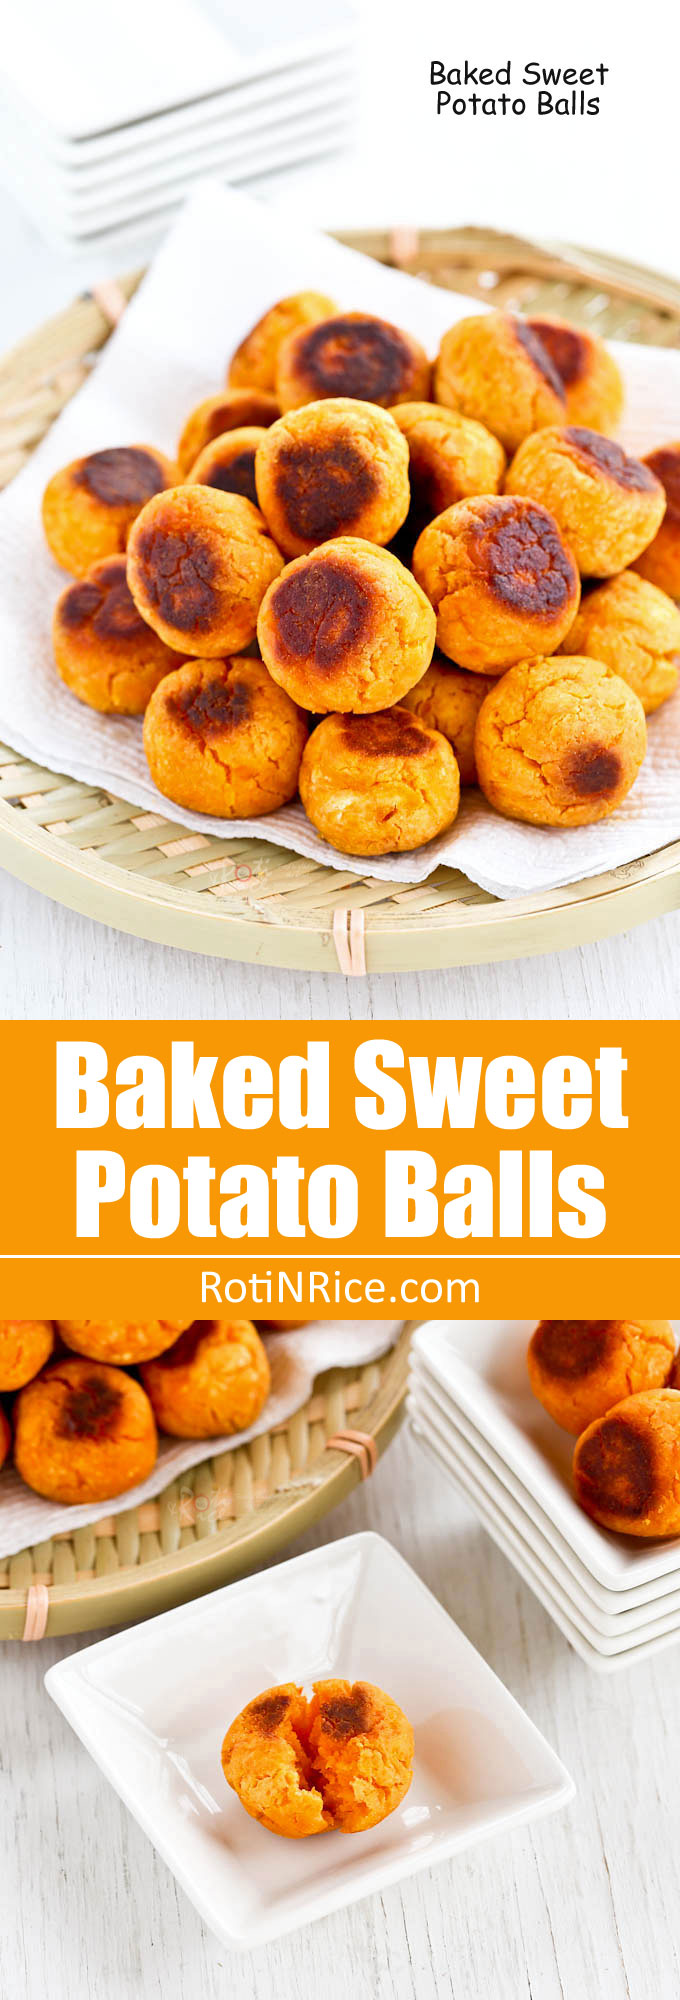 These gluten free Baked Sweet Potato Balls are a simple and tasty treat that is best eaten warm. It is a healthier alternative to the deep fried version. | RotiNRice.com